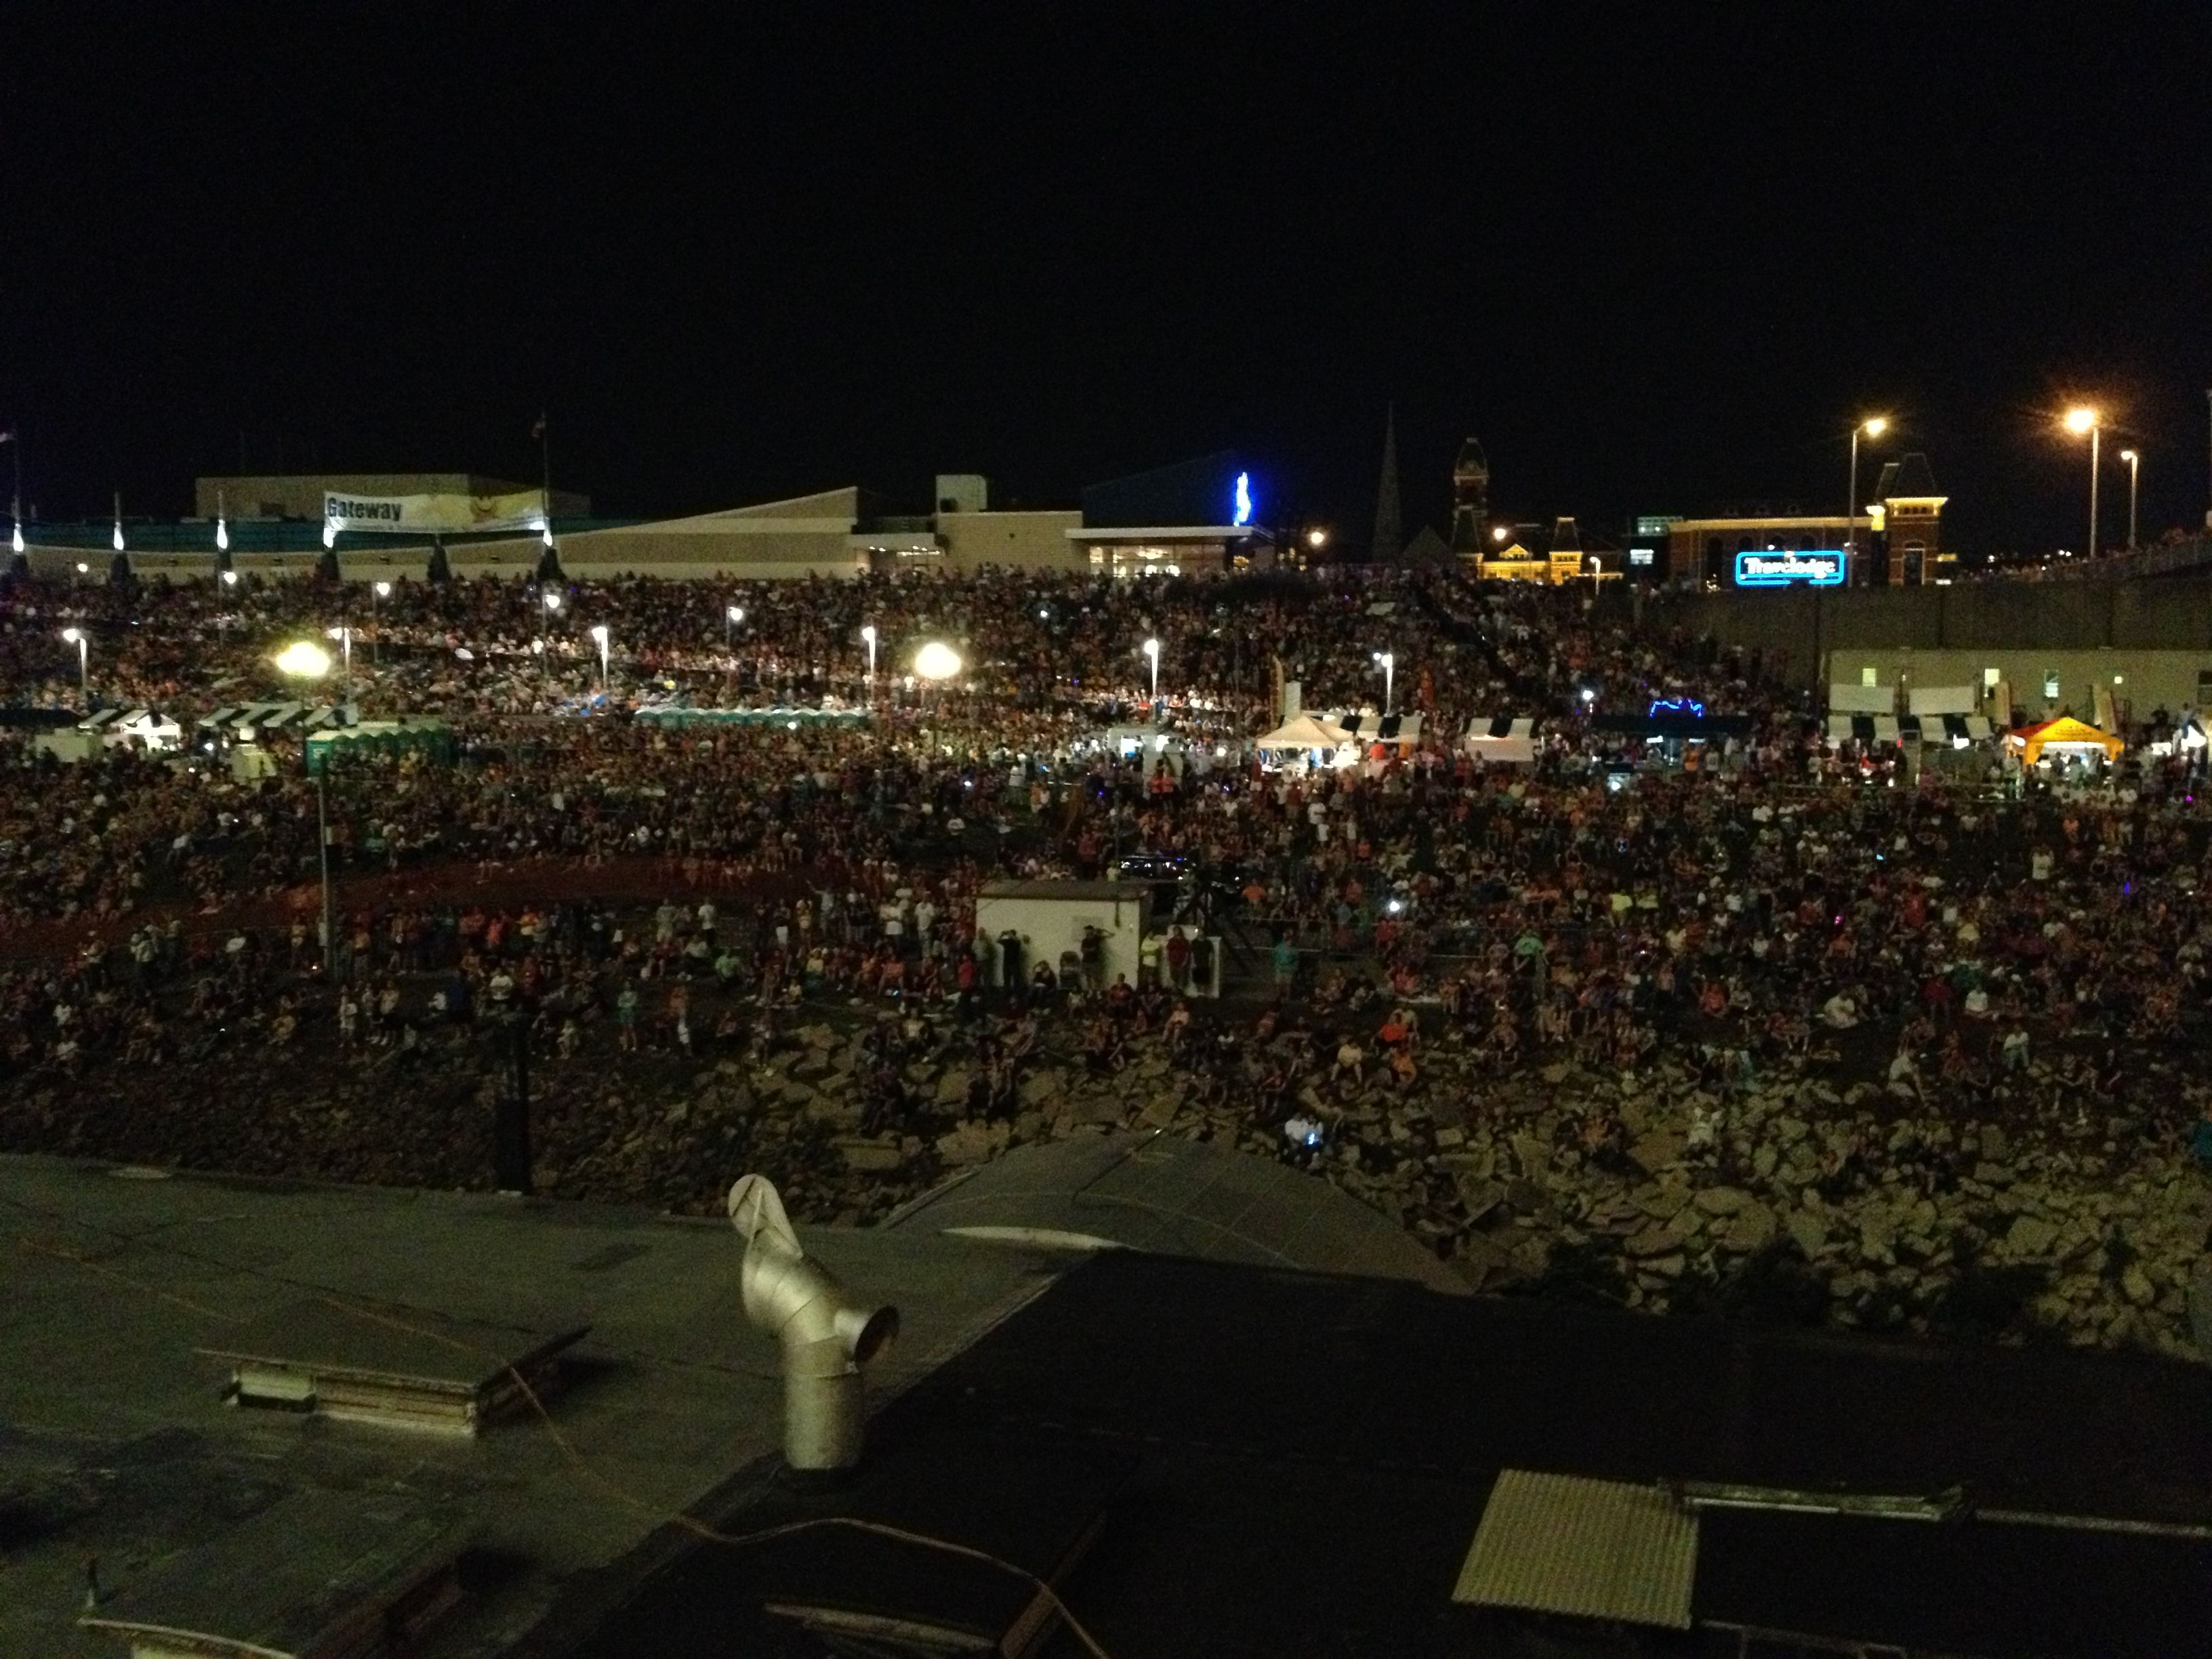 Crowd for the webn fireworks on the newport levee ohio